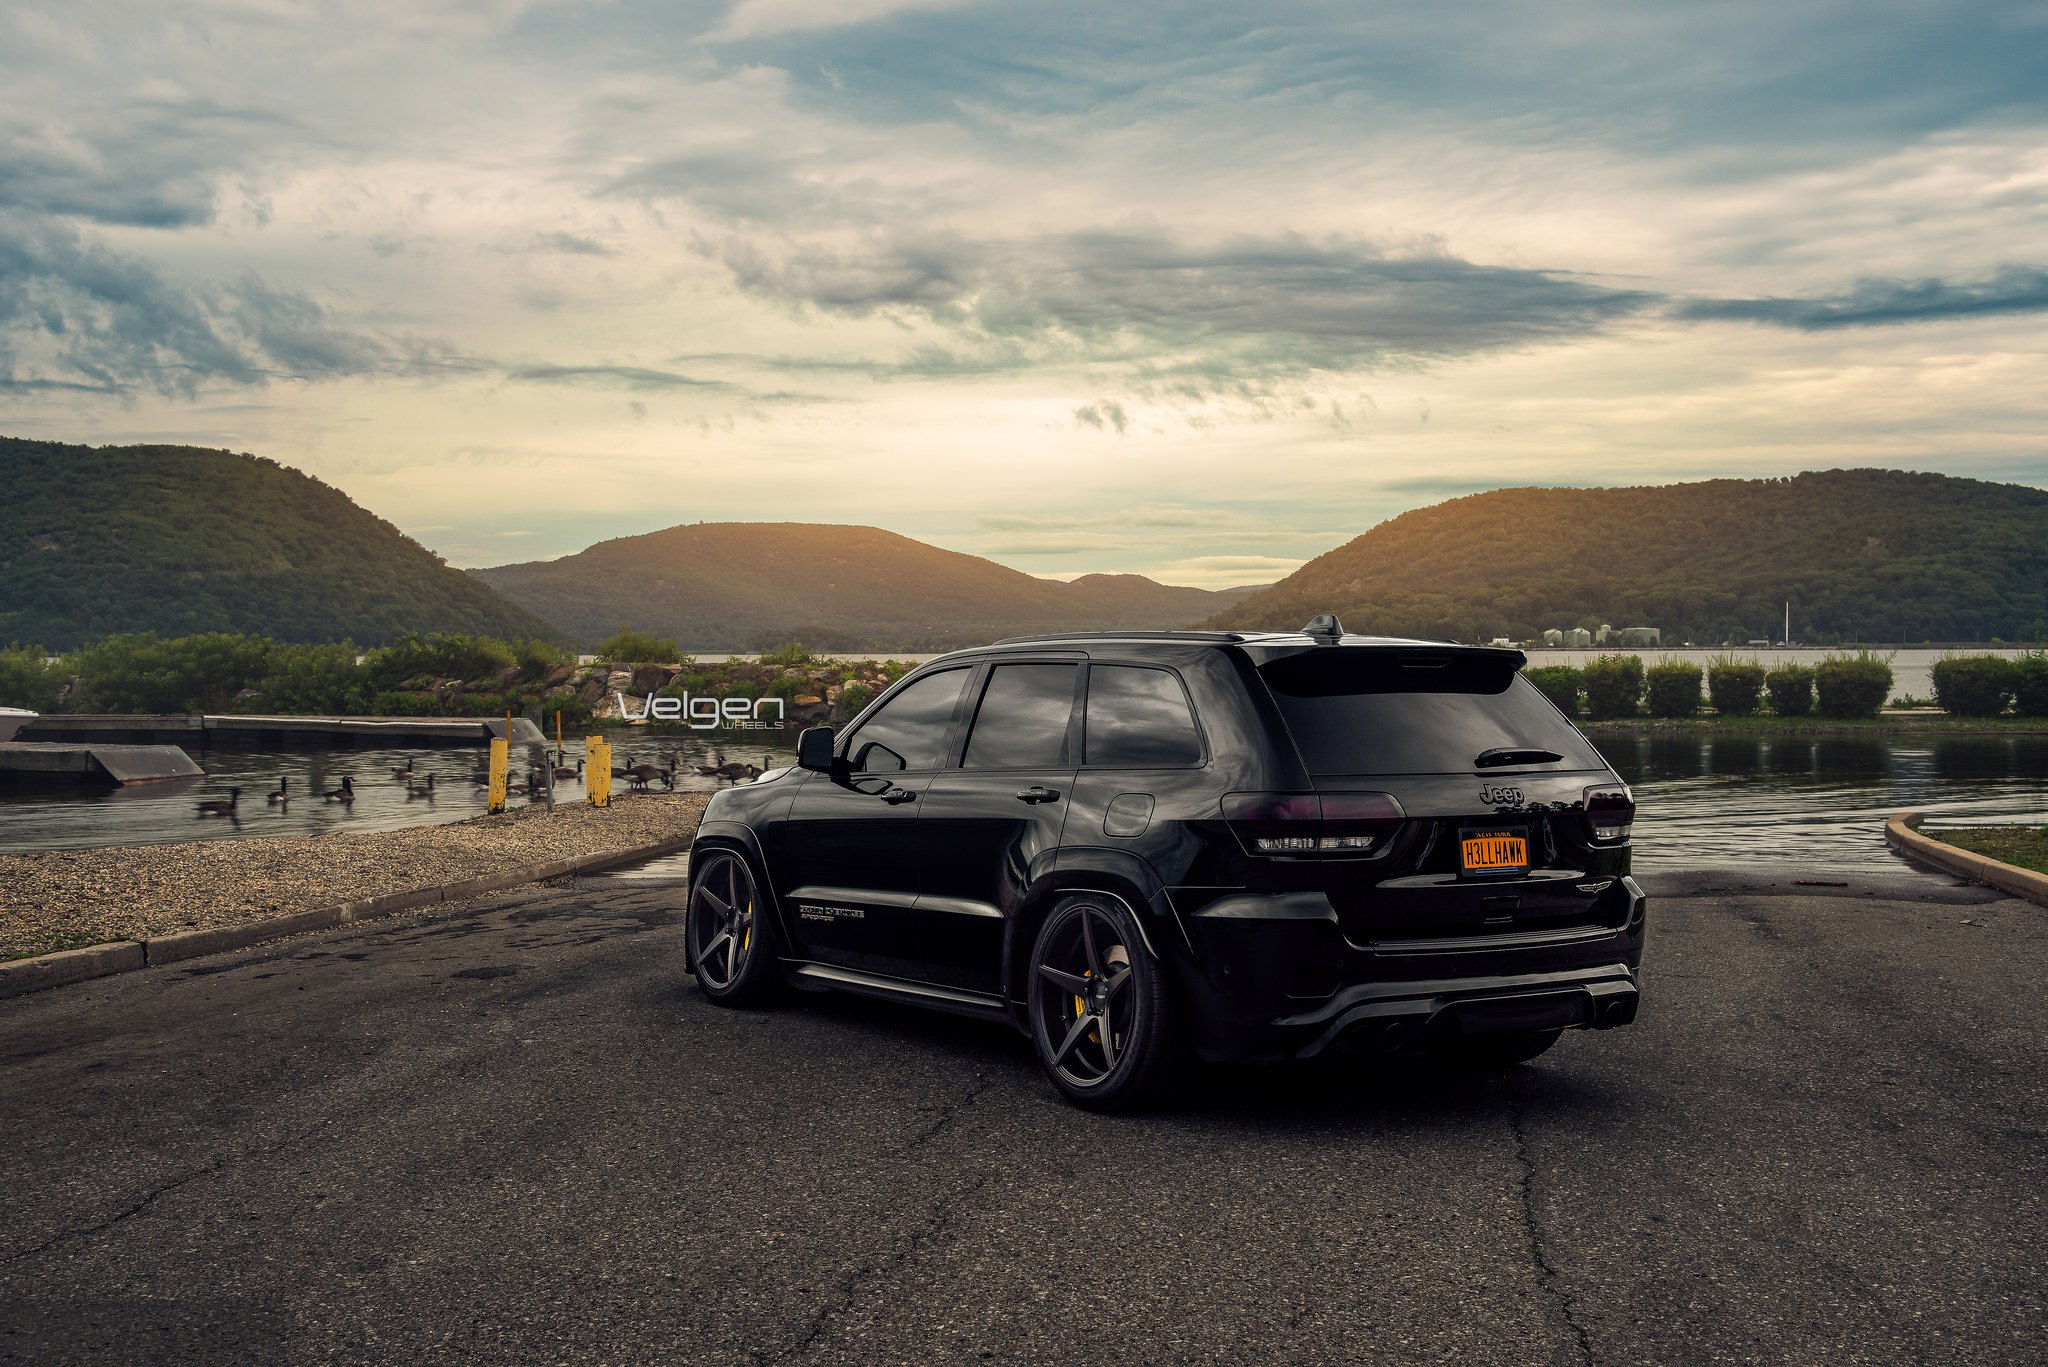 Blacked Out Jeep Grand Cherokee Gets Sharp Look With ...